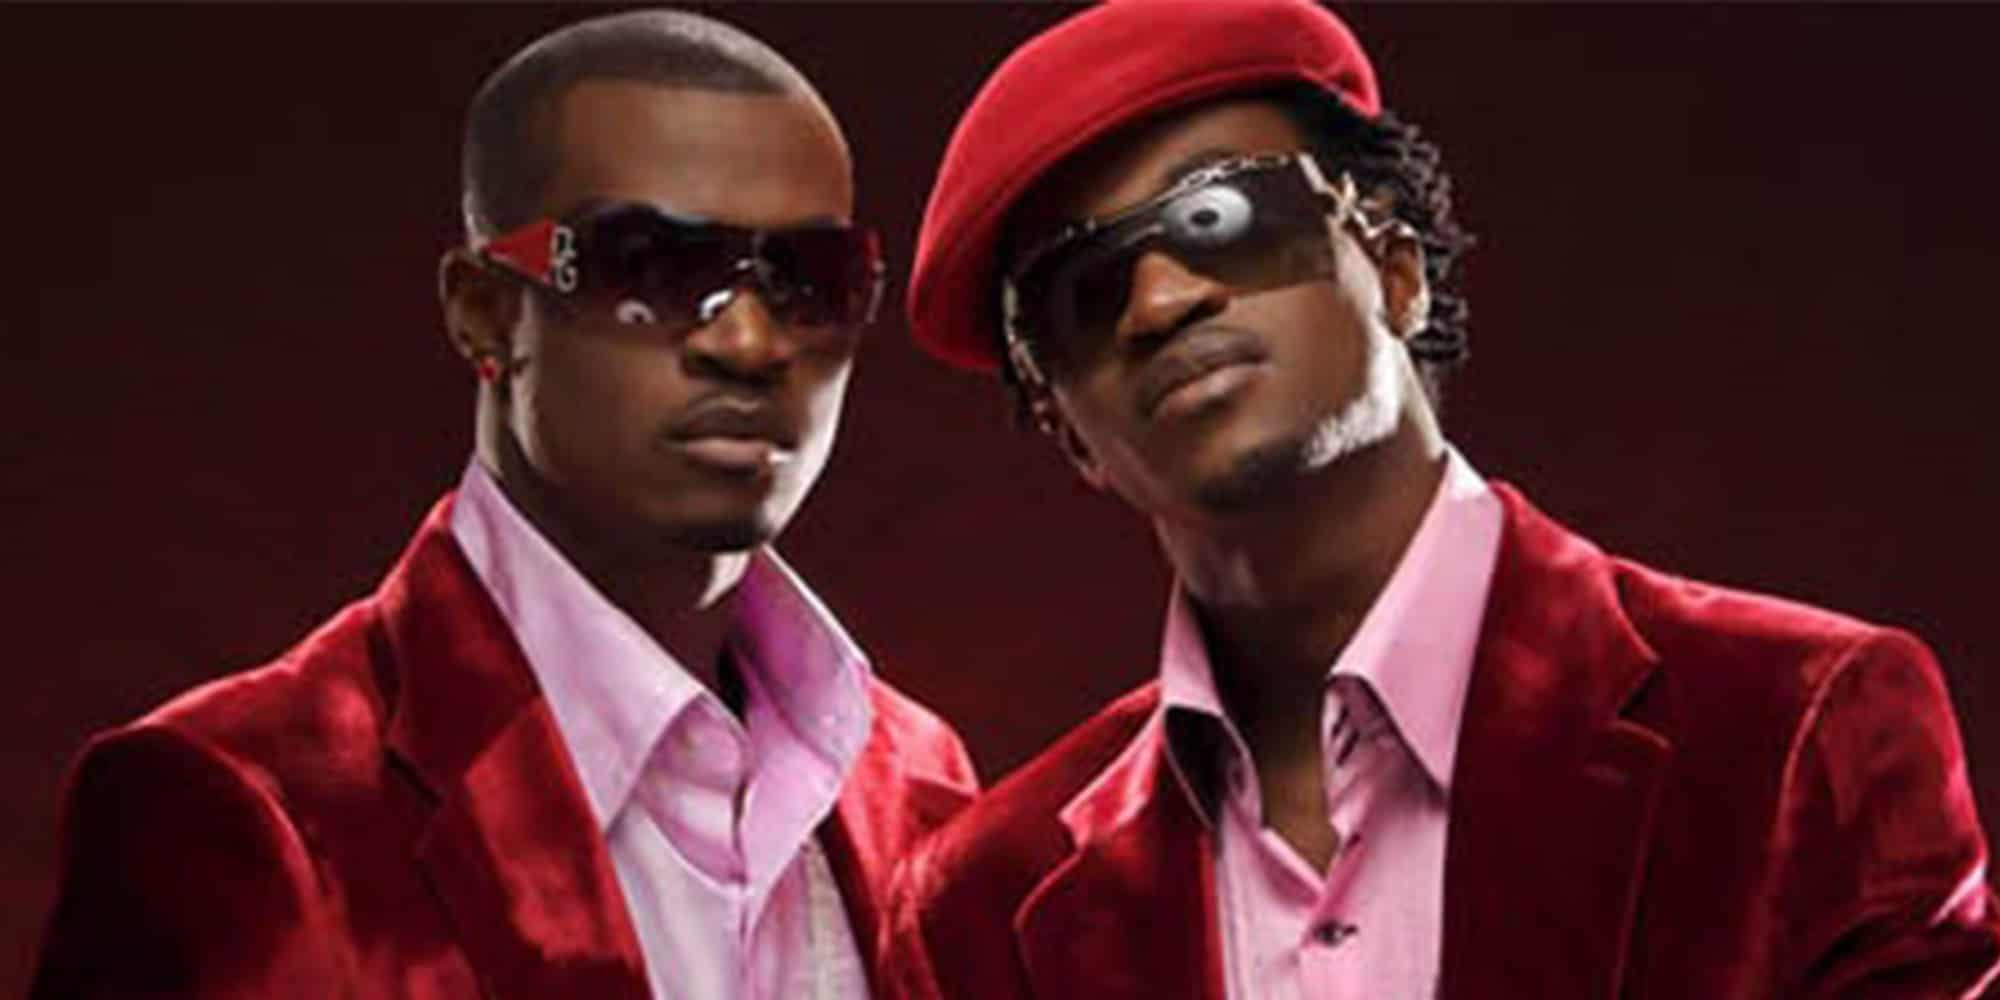 A look at P-Square's impact on Afropop over the years